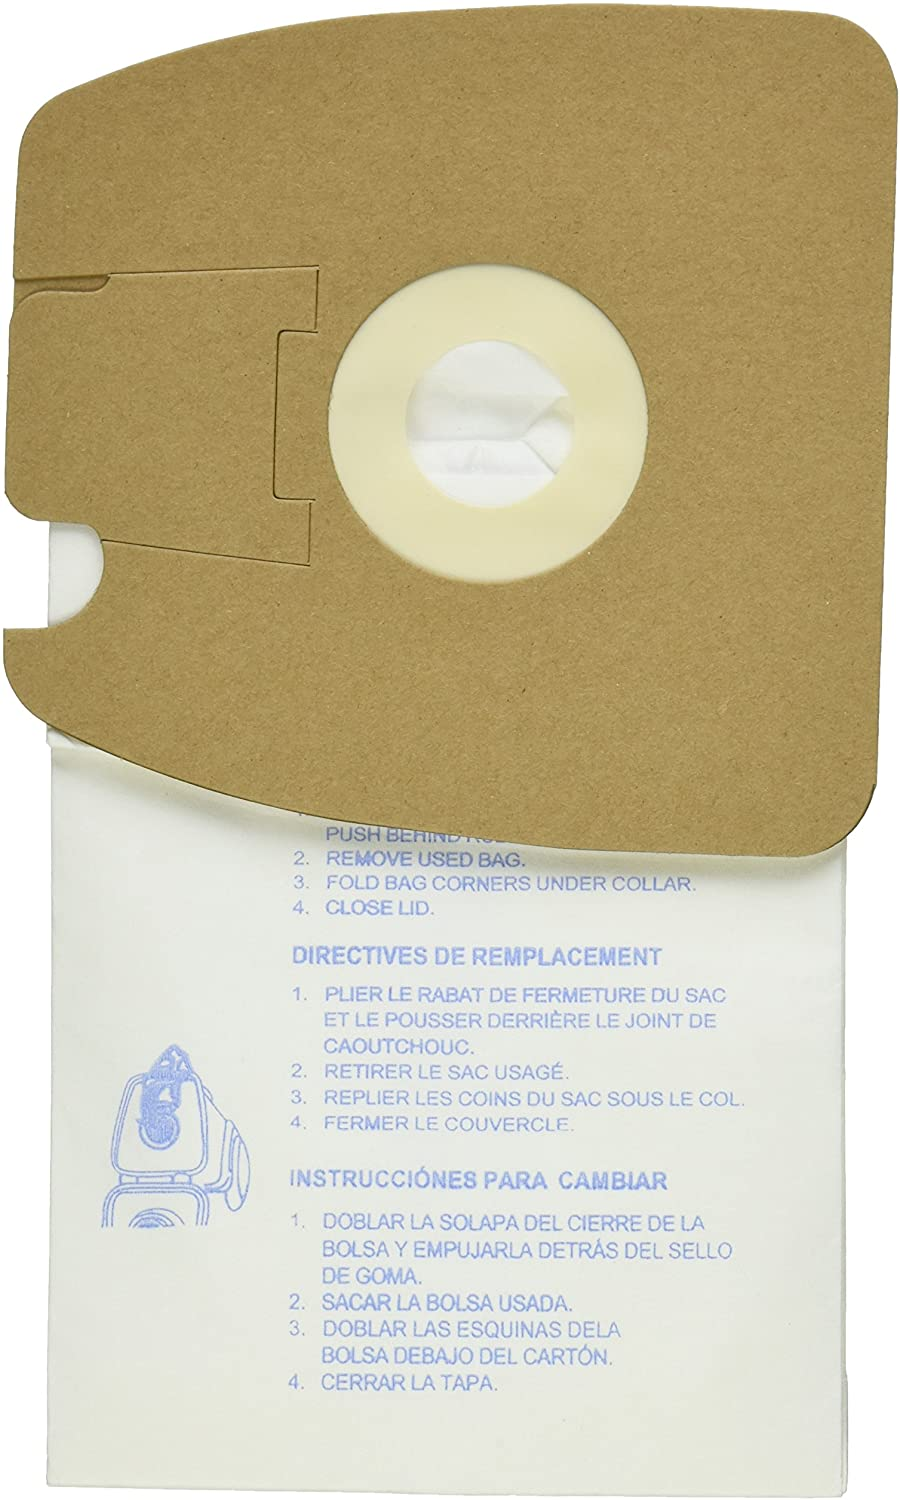 EnviroCare Eureka Style MM Micro-Filtration 9 Vacuum Bags - Pack Max 35% OFF 49% OFF